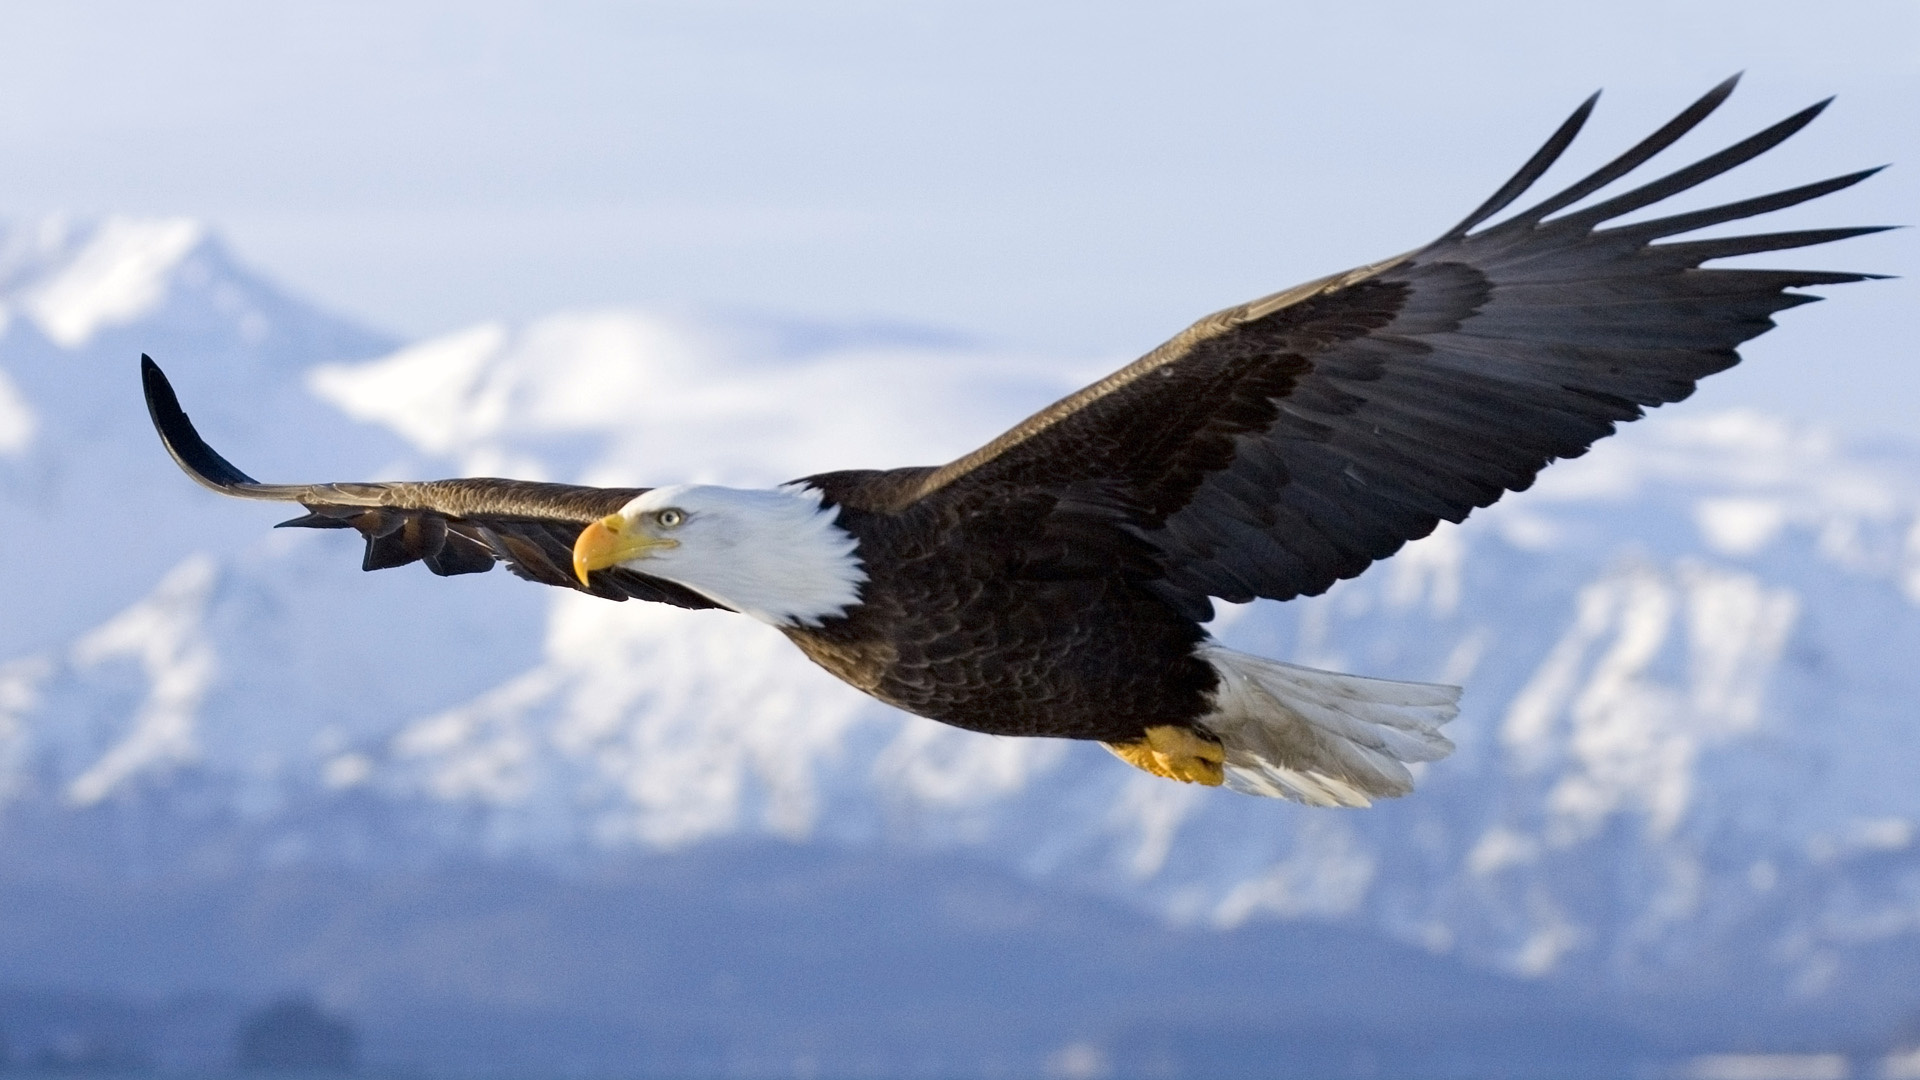 Eagle Flying in the Mountains 795.83 Kb